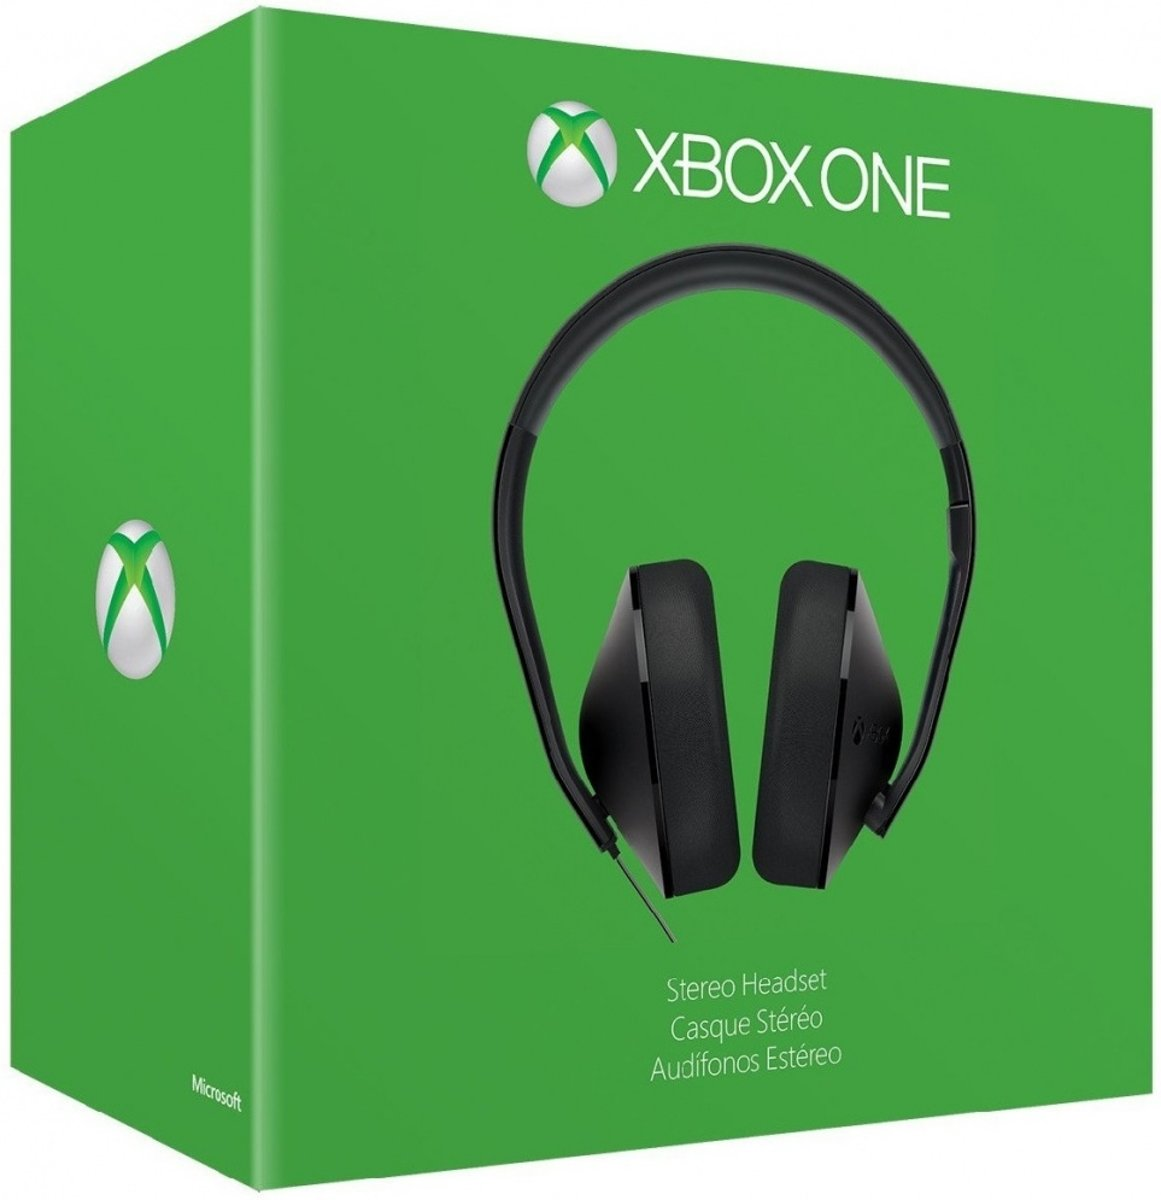 Microsoft Official Xbox One Stereo Headset and Headset Adapter - Xbox One kopen